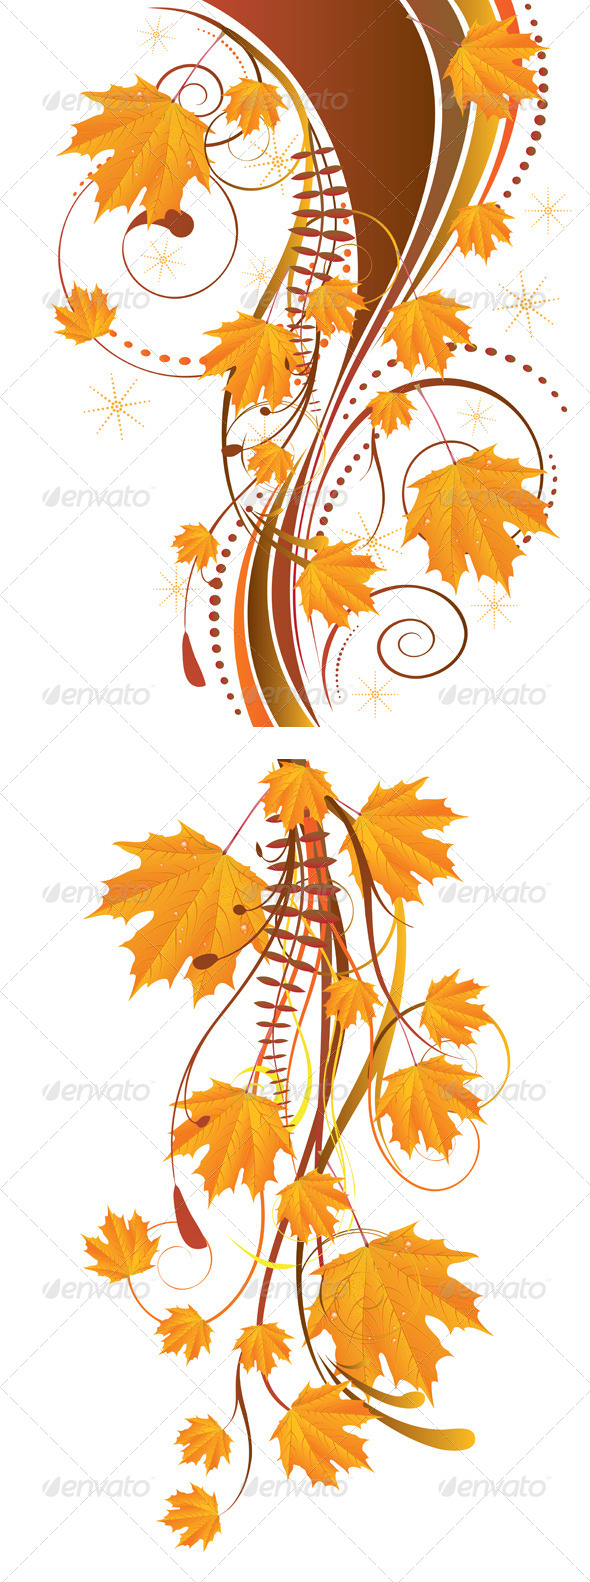 GraphicRiver Autumn Ornament with Maple Leaves 7244460